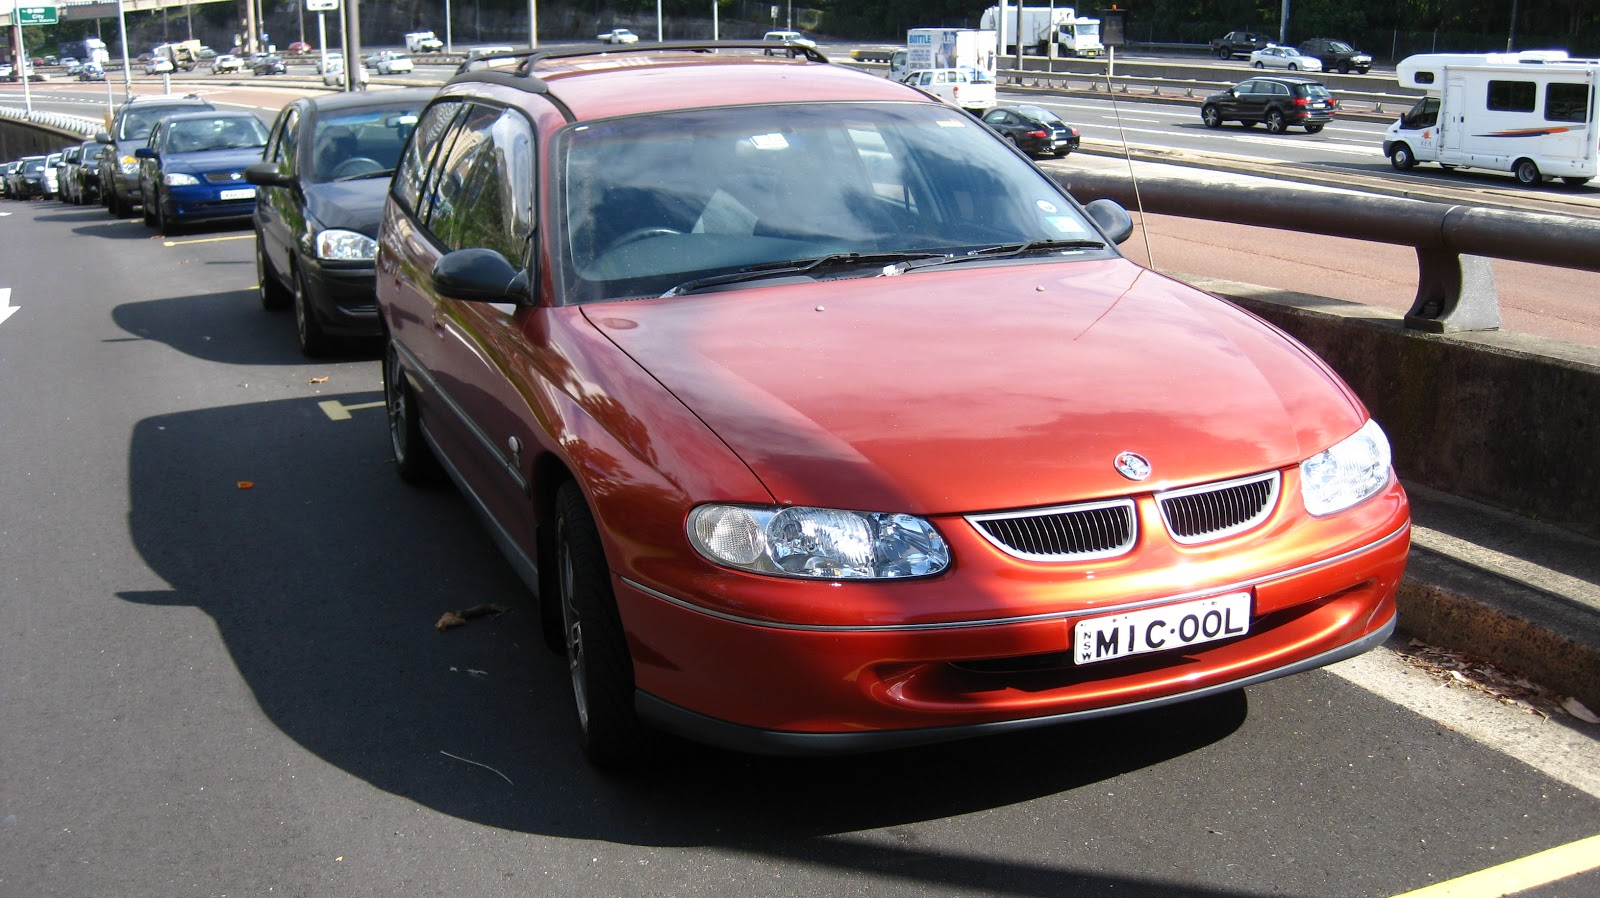 Aussie Old Parked Cars 1999 Holden Vt Commodore Olympic